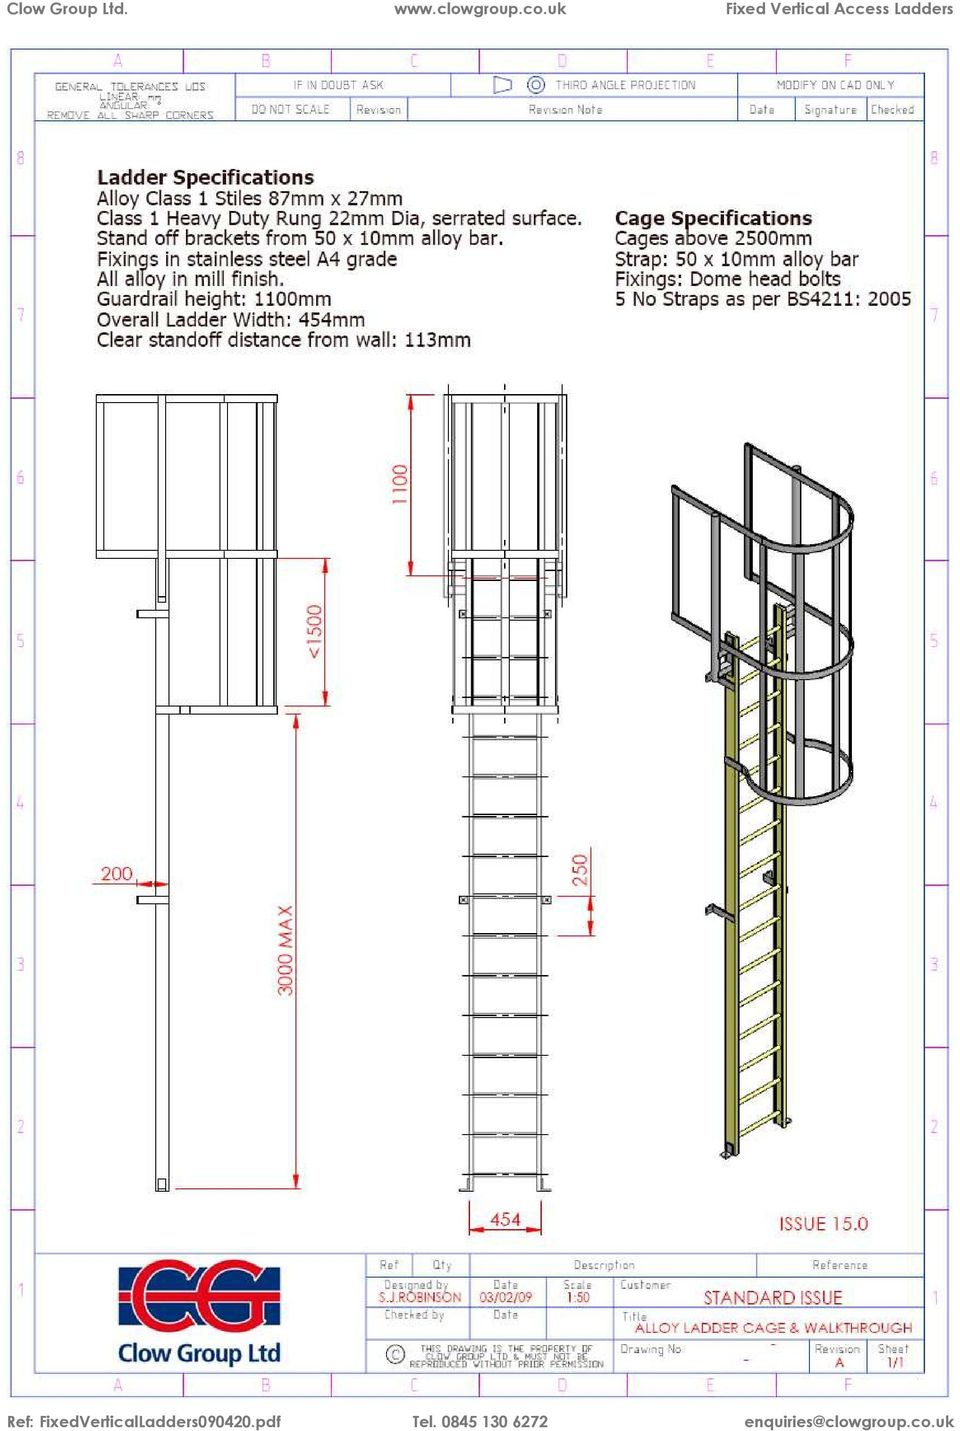 Fixed Vertical Access Ladders Pdf